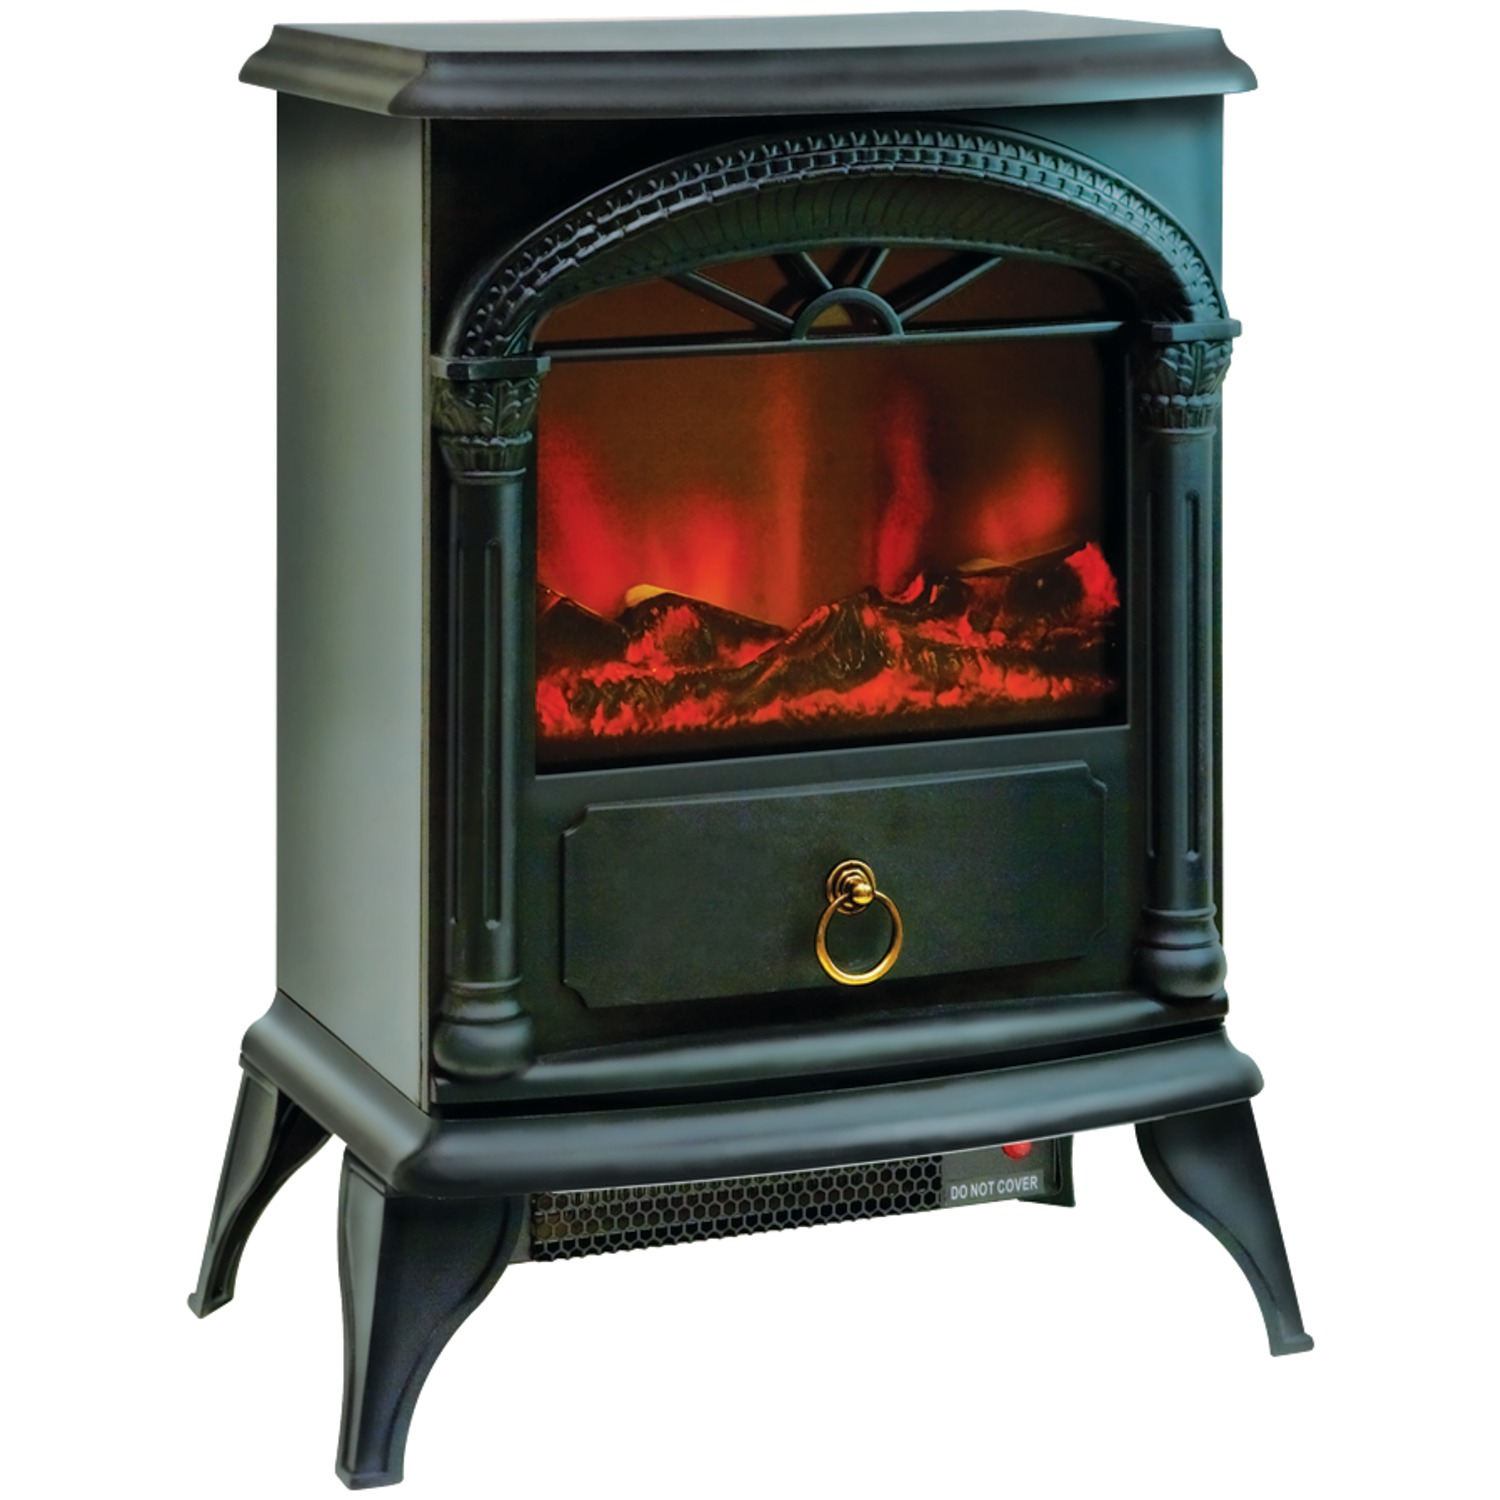 "Comfort Zone 266703 21.5"" Fireplace Electric Stove"